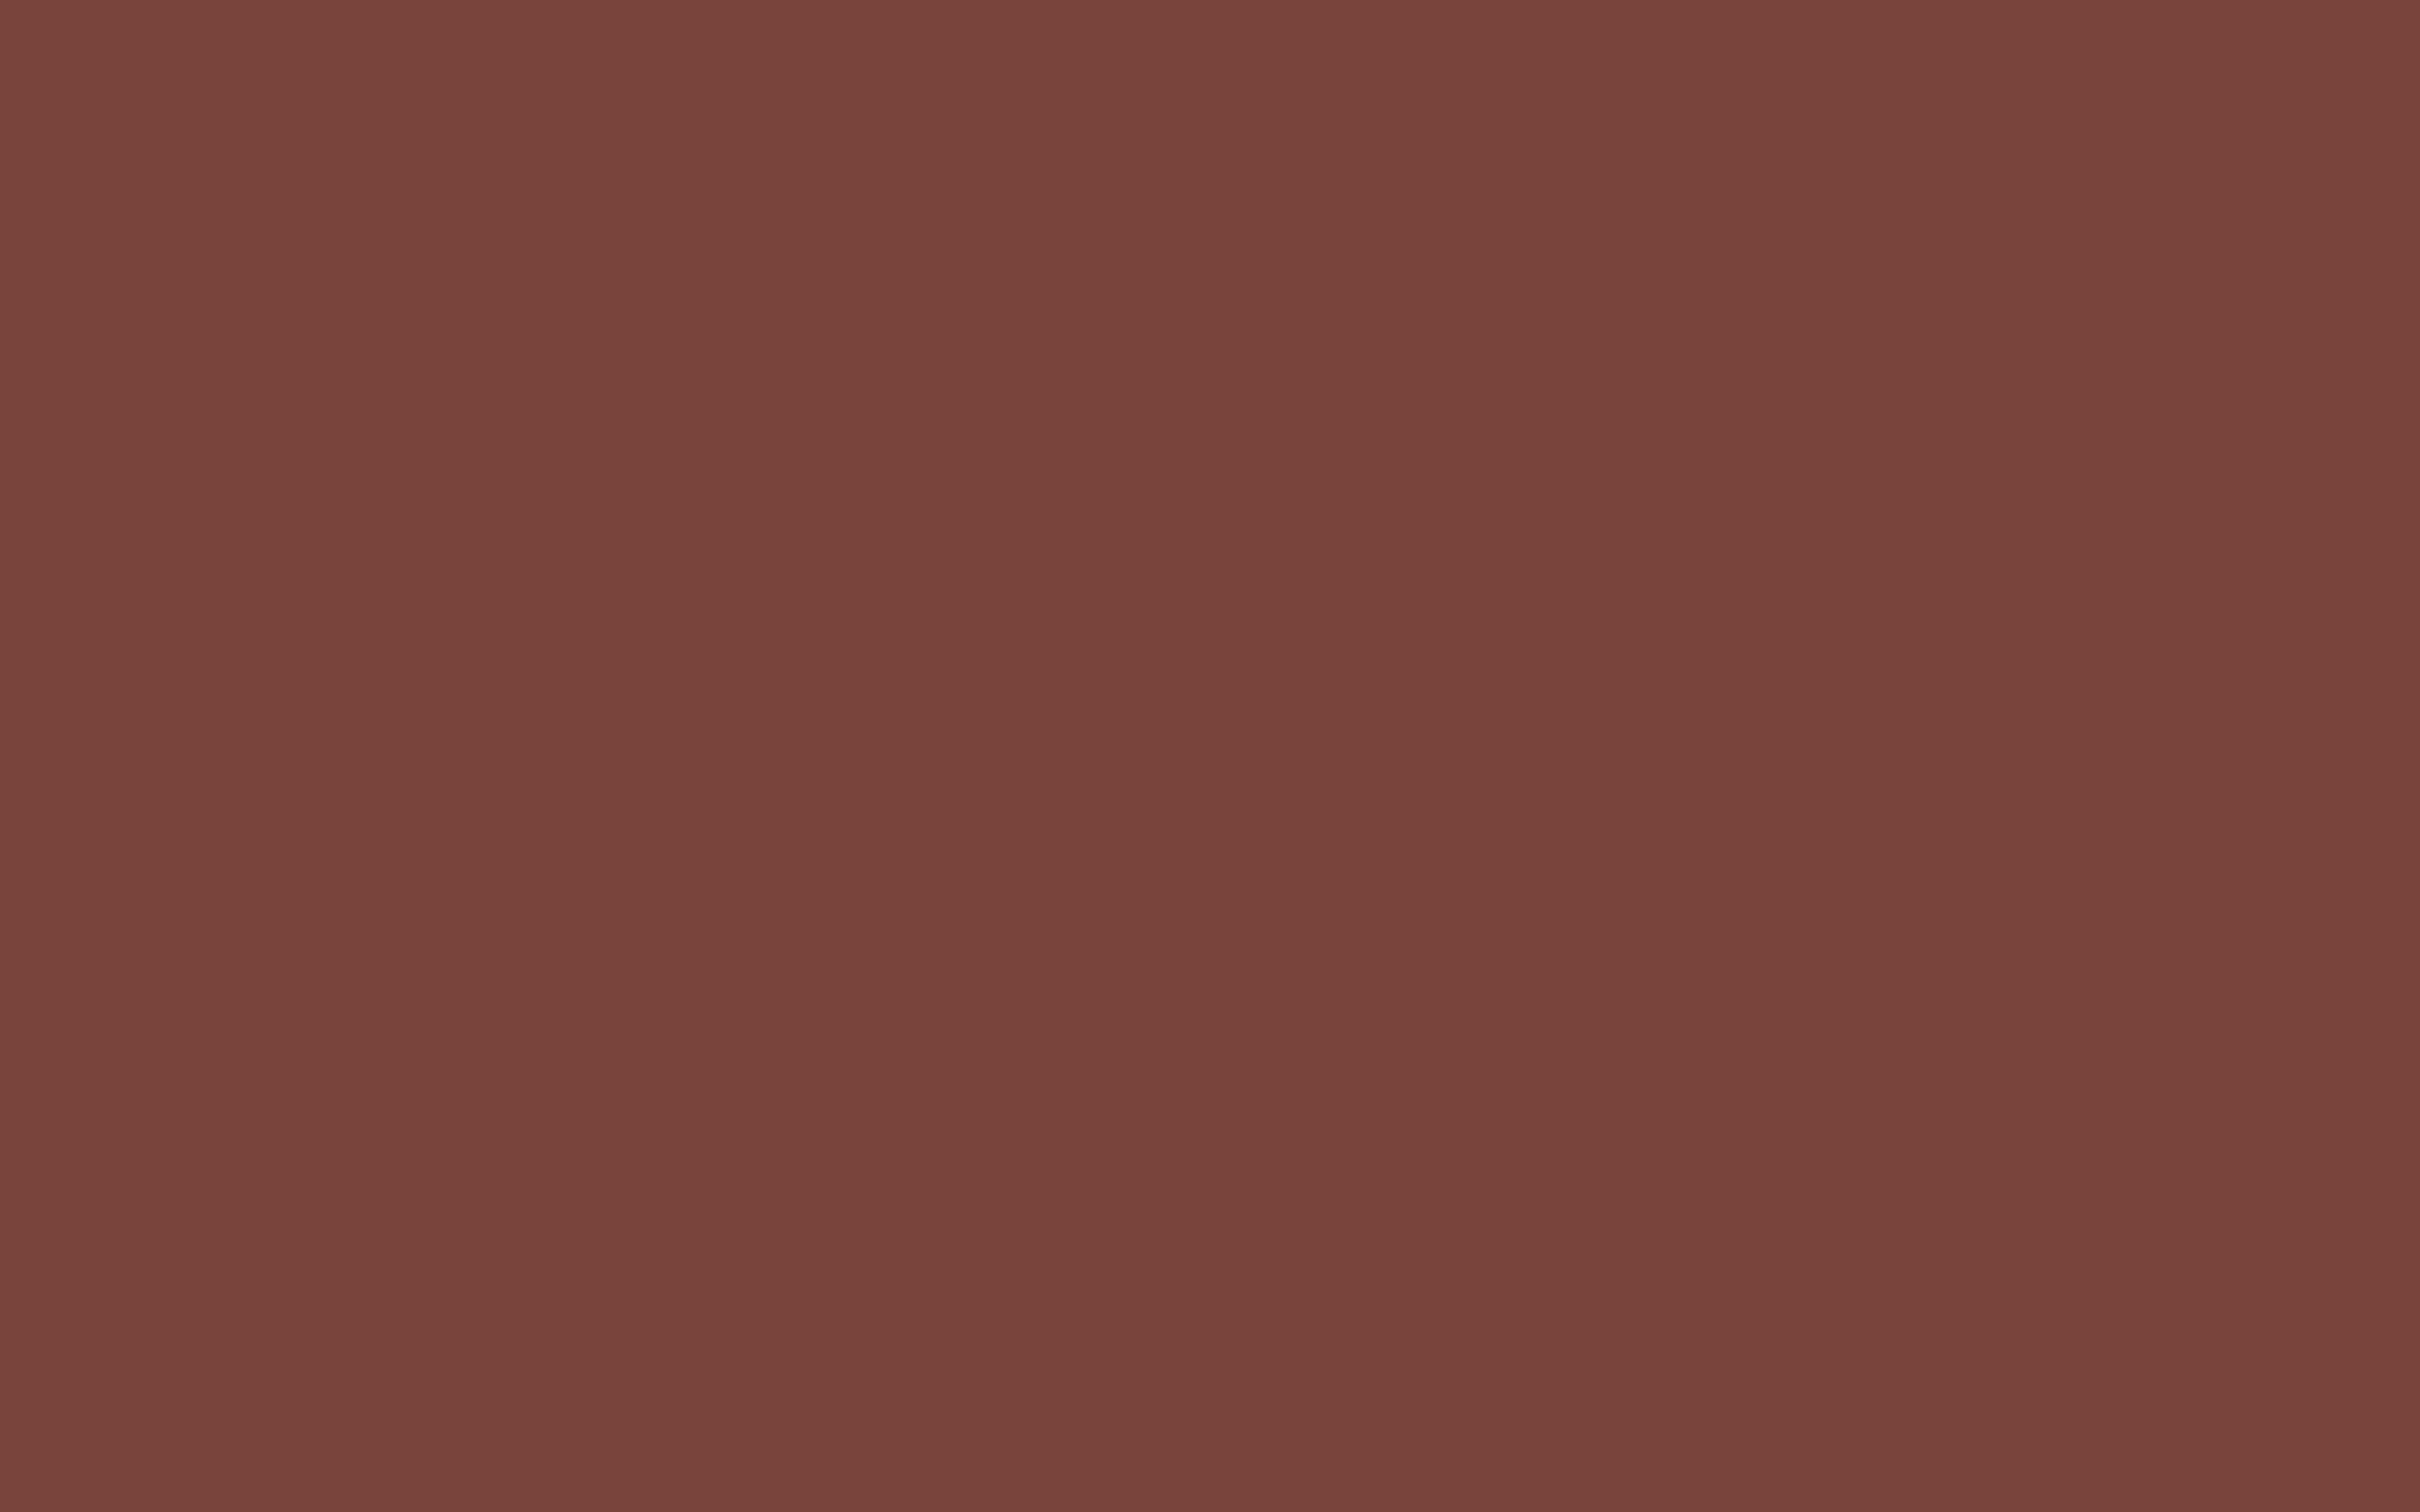 2560x1600 Bole Solid Color Background